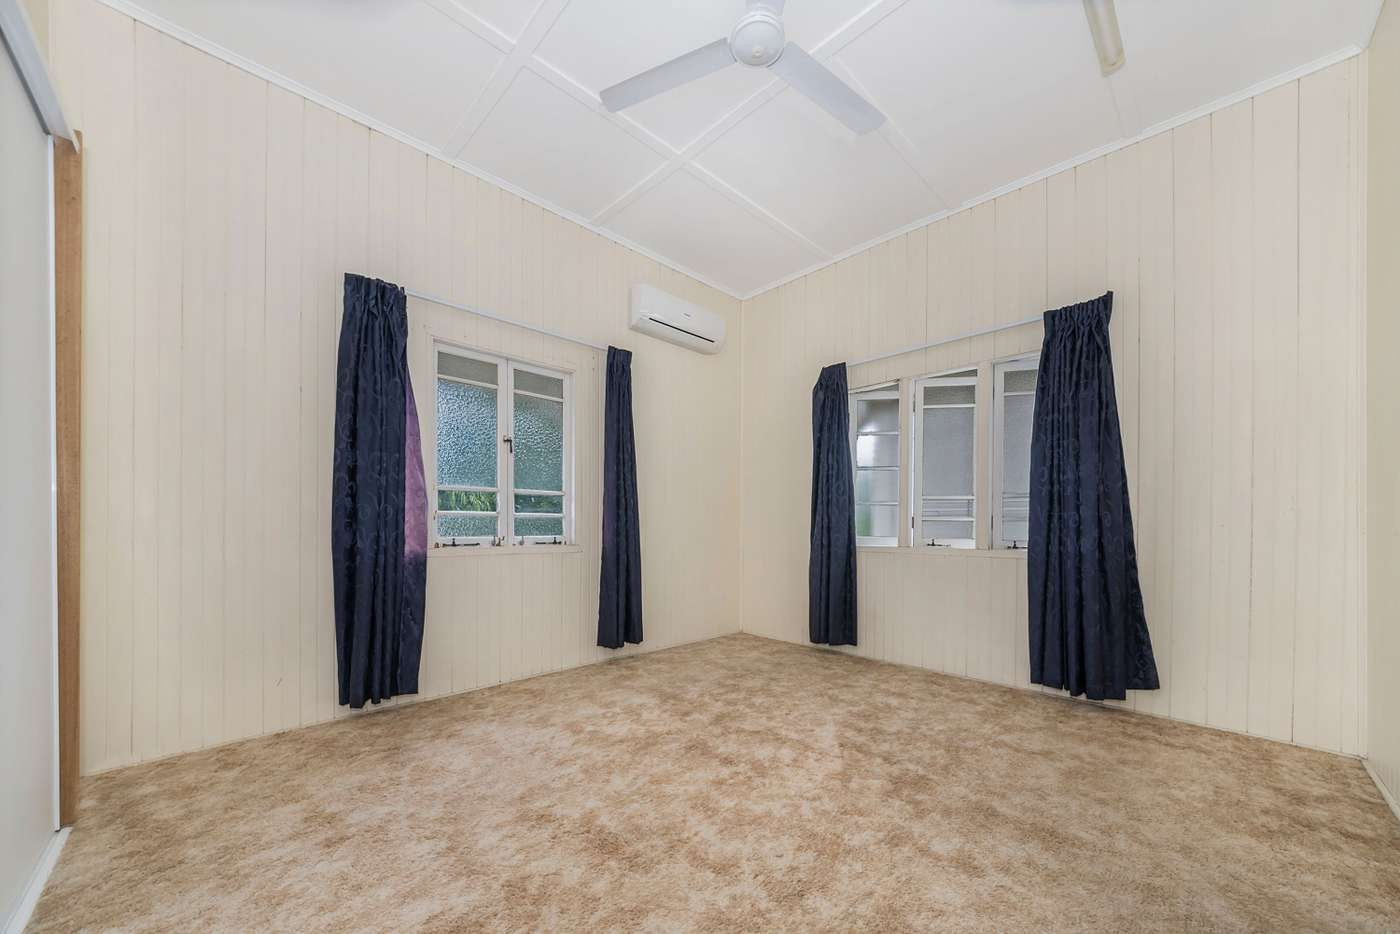 Seventh view of Homely house listing, 35 Norris Street, Hermit Park QLD 4812